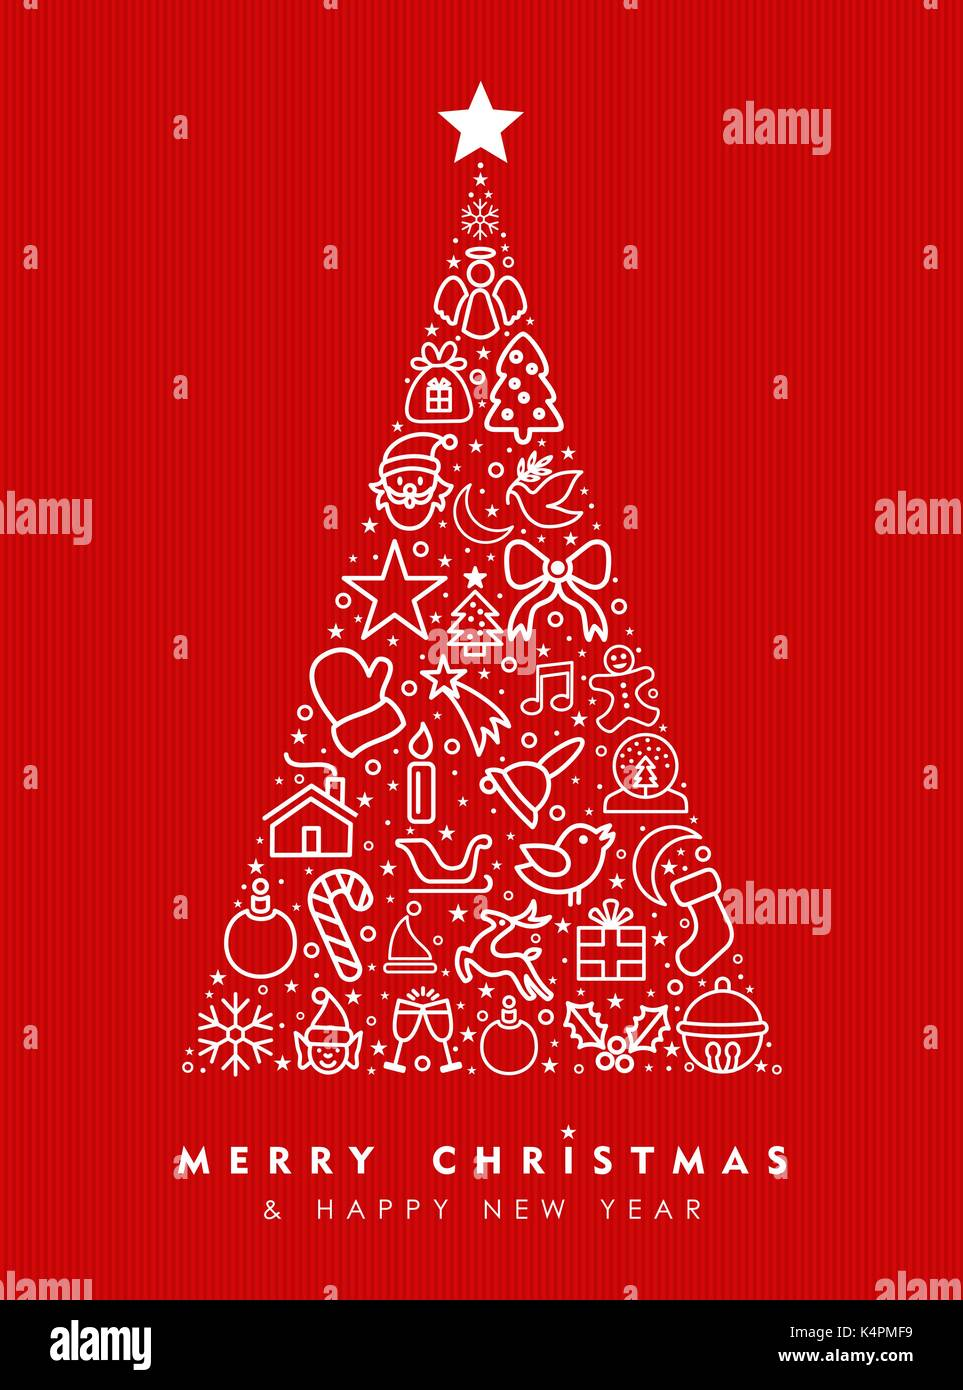 Merry Christmas And Happy New Year Greeting Card Design Red Holiday